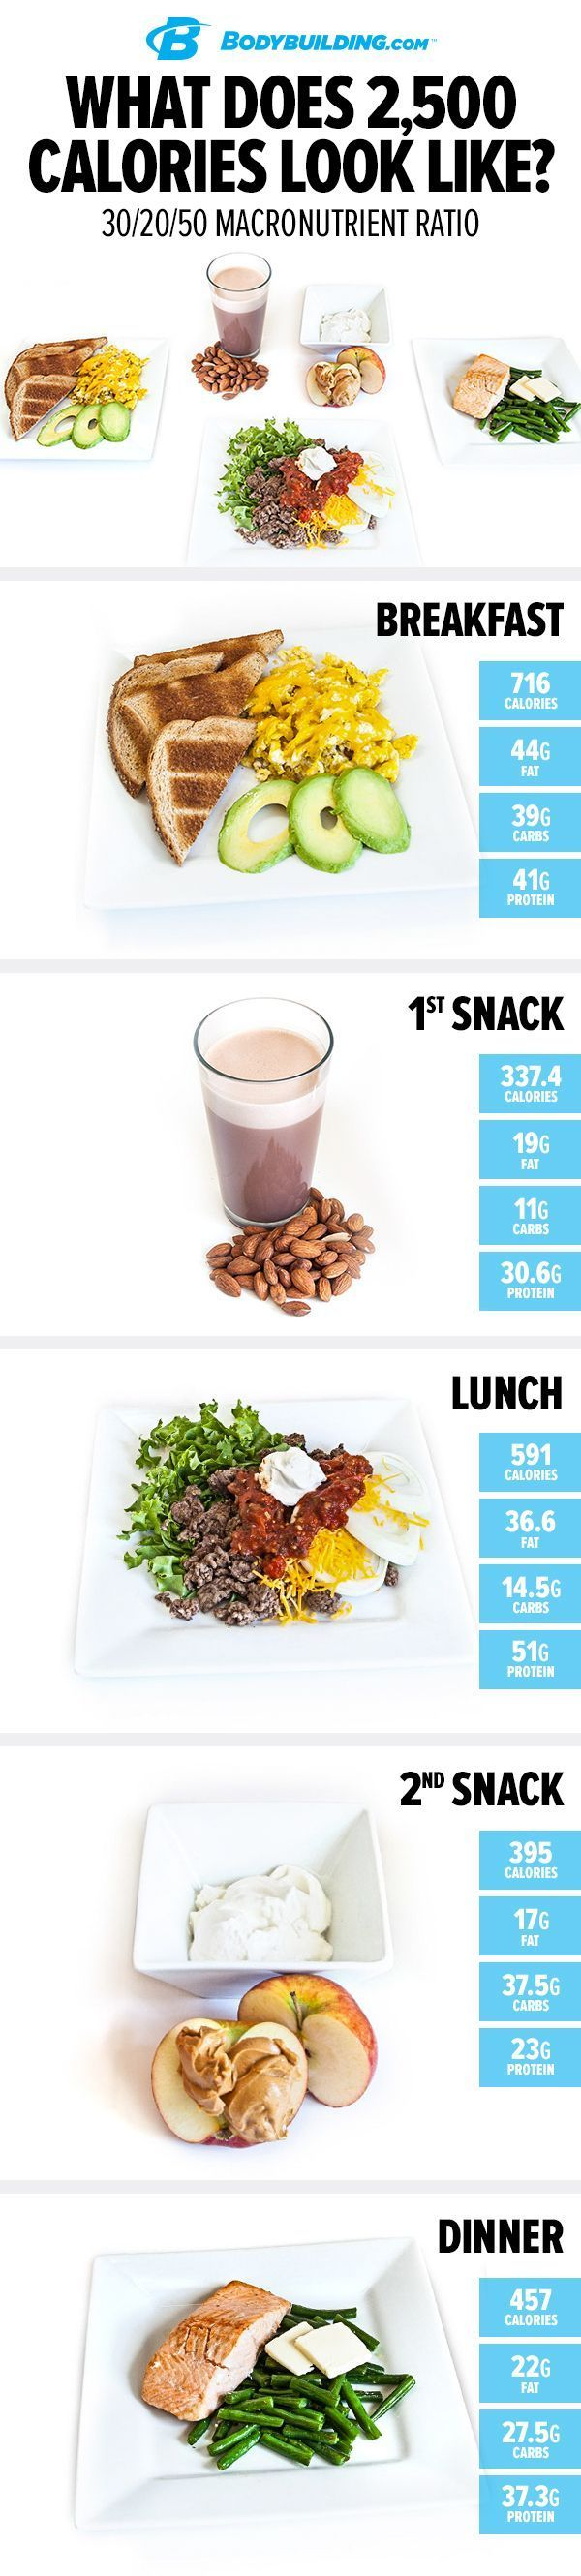 Fat Fast Shrinking Signal Diet-Recipes What Does 2,500 Calories Look Like? Do This One Unusual 10-Minute Trick Before Work To Melt Away 15+ Pounds of Belly Fat